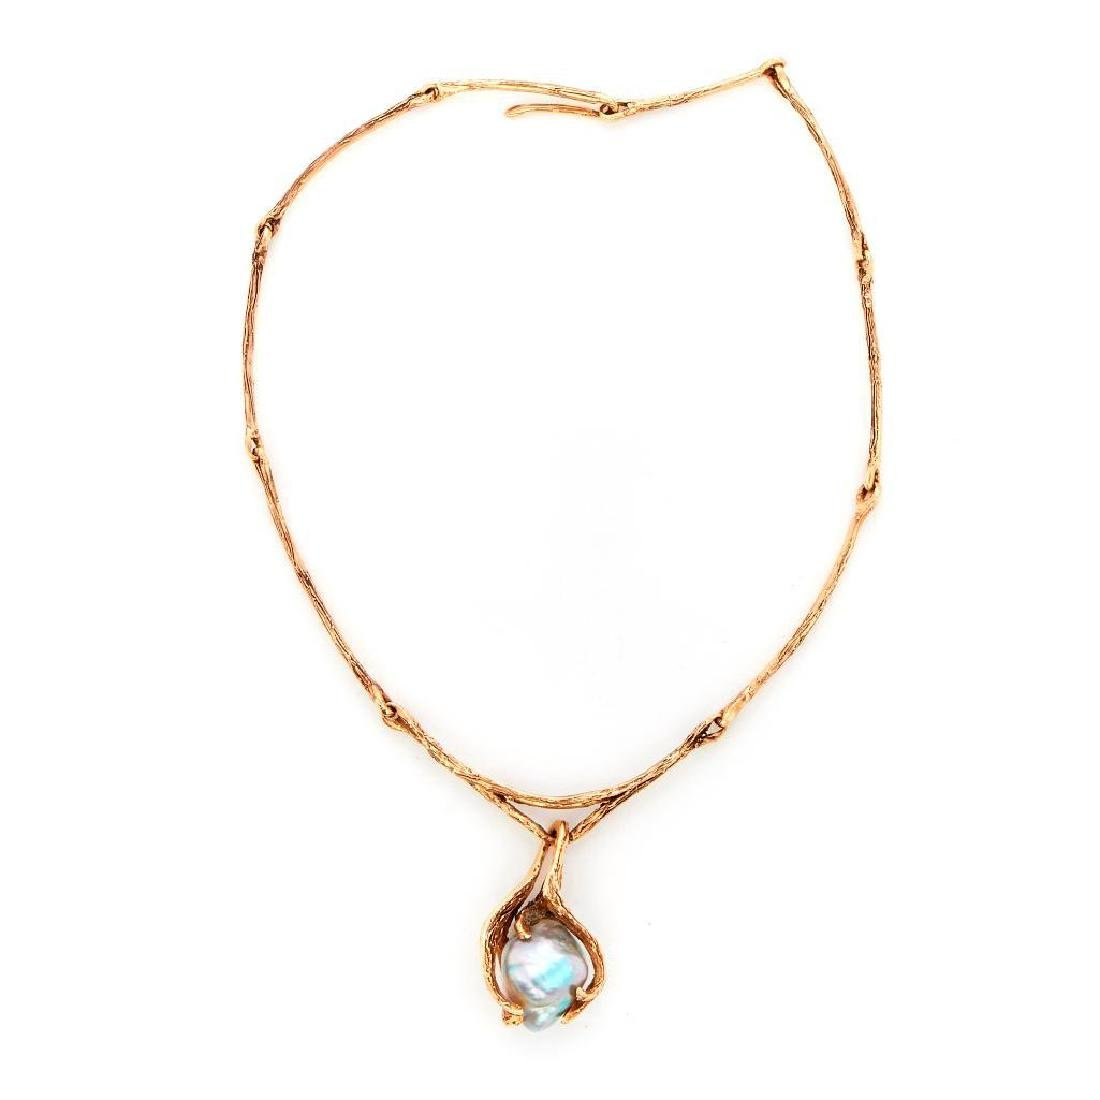 Baroque cultured pearl and 14k gold necklace - 2